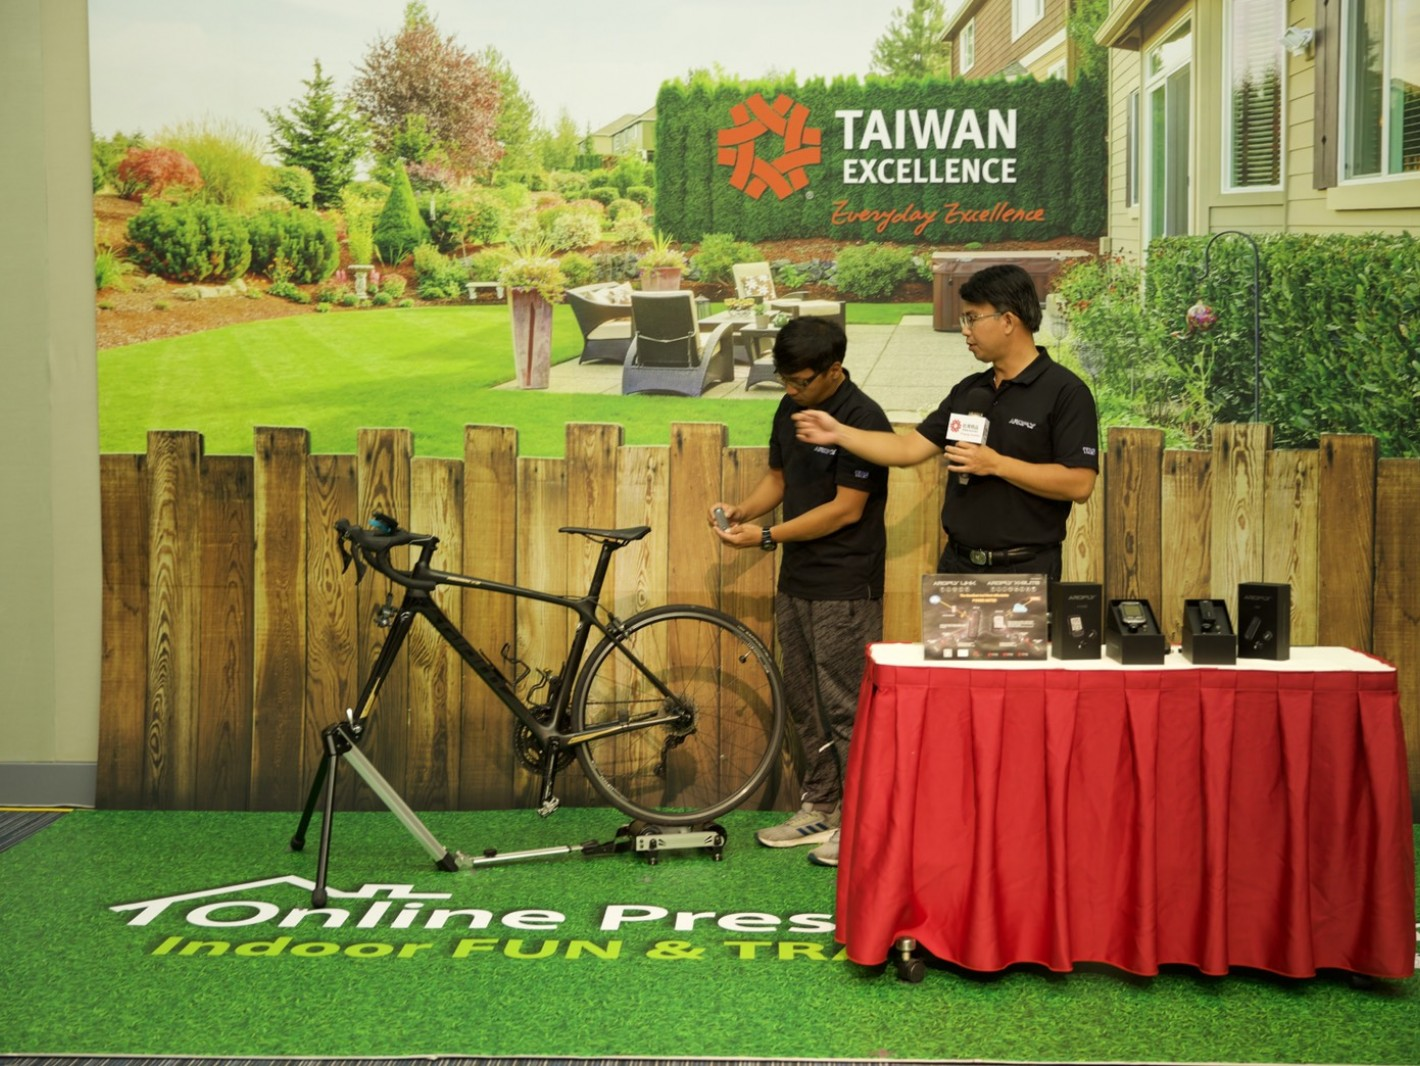 Vice president of TBS Group Corp. demonstrated about how to use the bicycle power meter, LINK